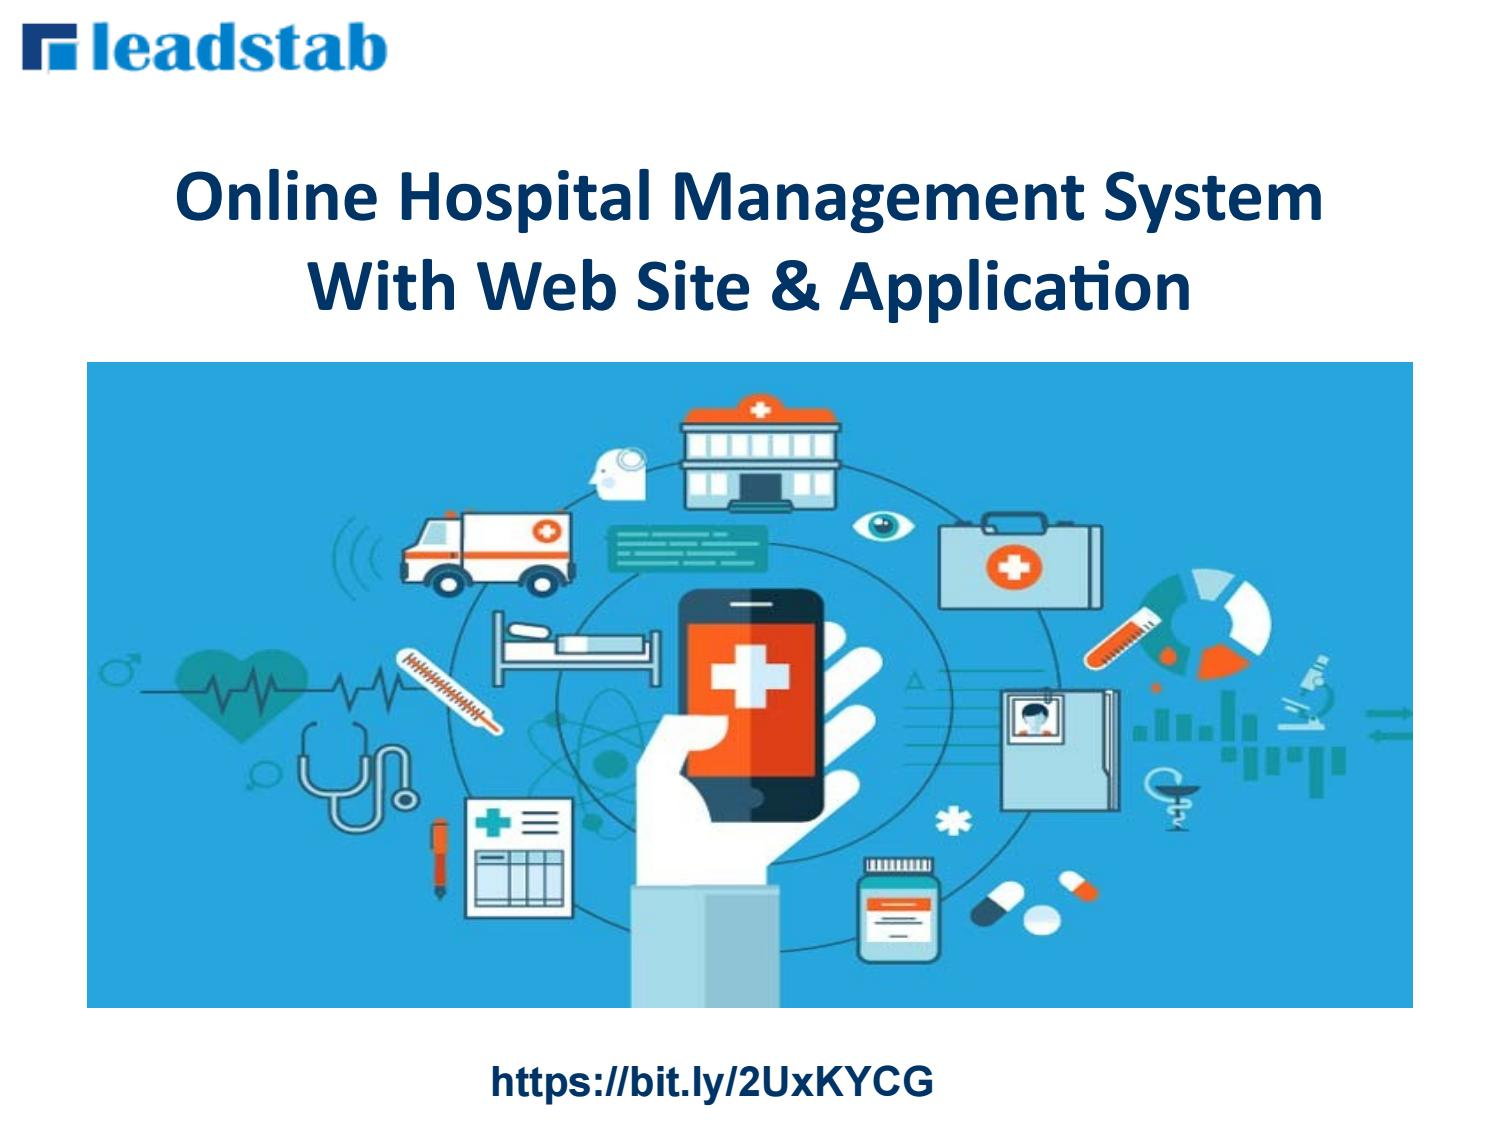 Online Hospital Management System with Dynamic Website by